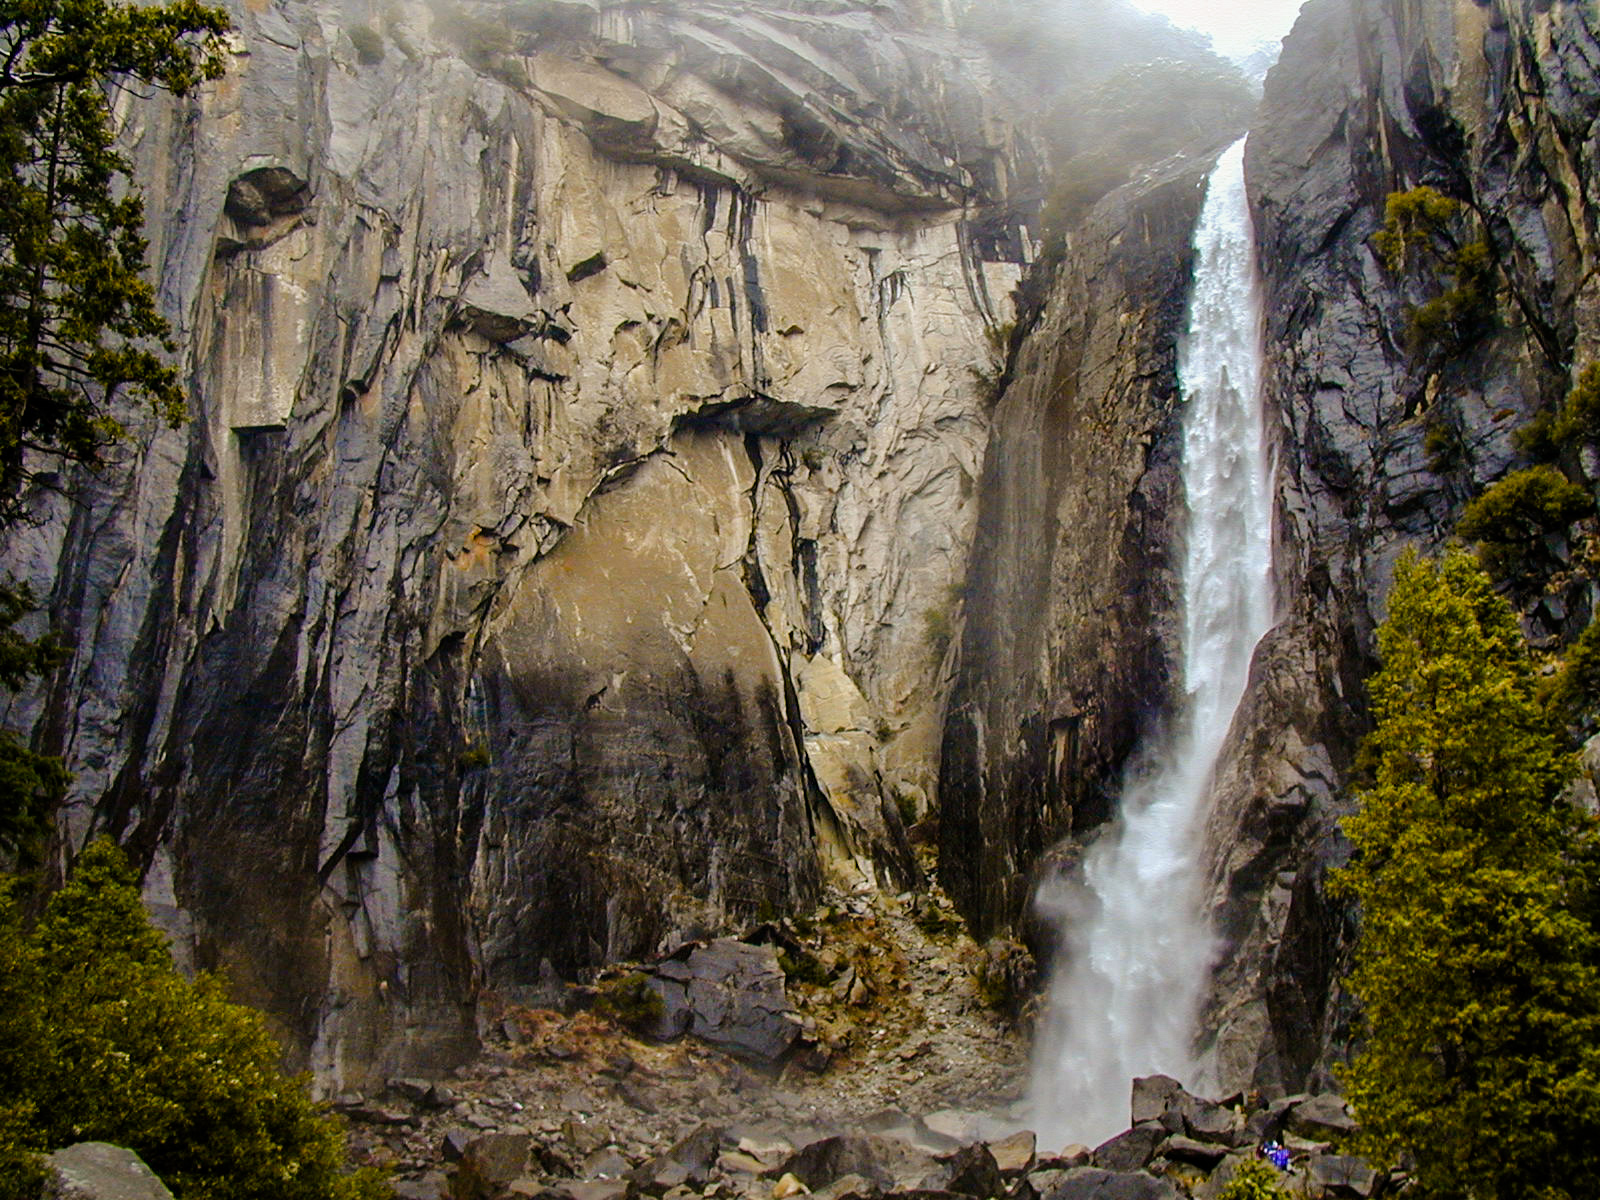 One of Yosemite's many waterfalls